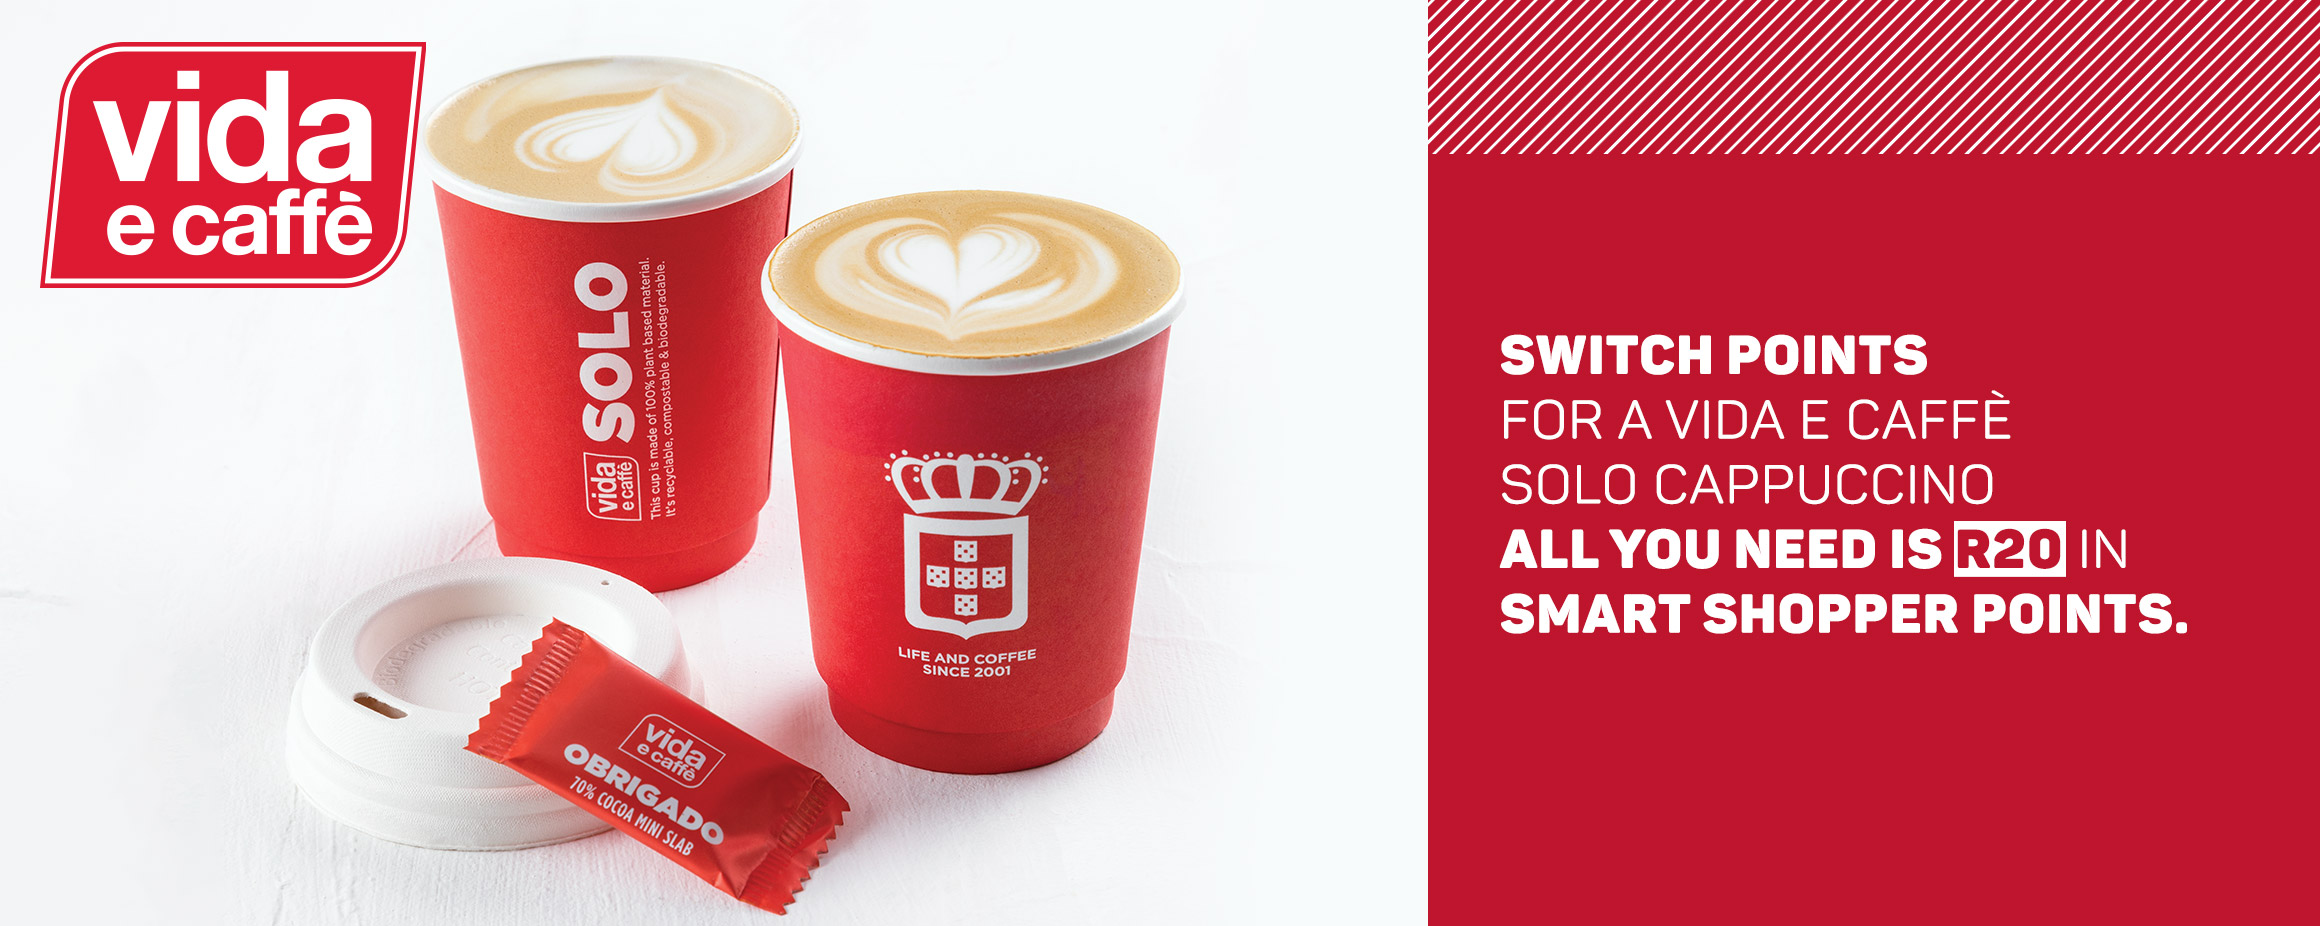 Switch points for a Vida E Caffe Solo Cappuccino. All you need is R20 in Smart Shopper points